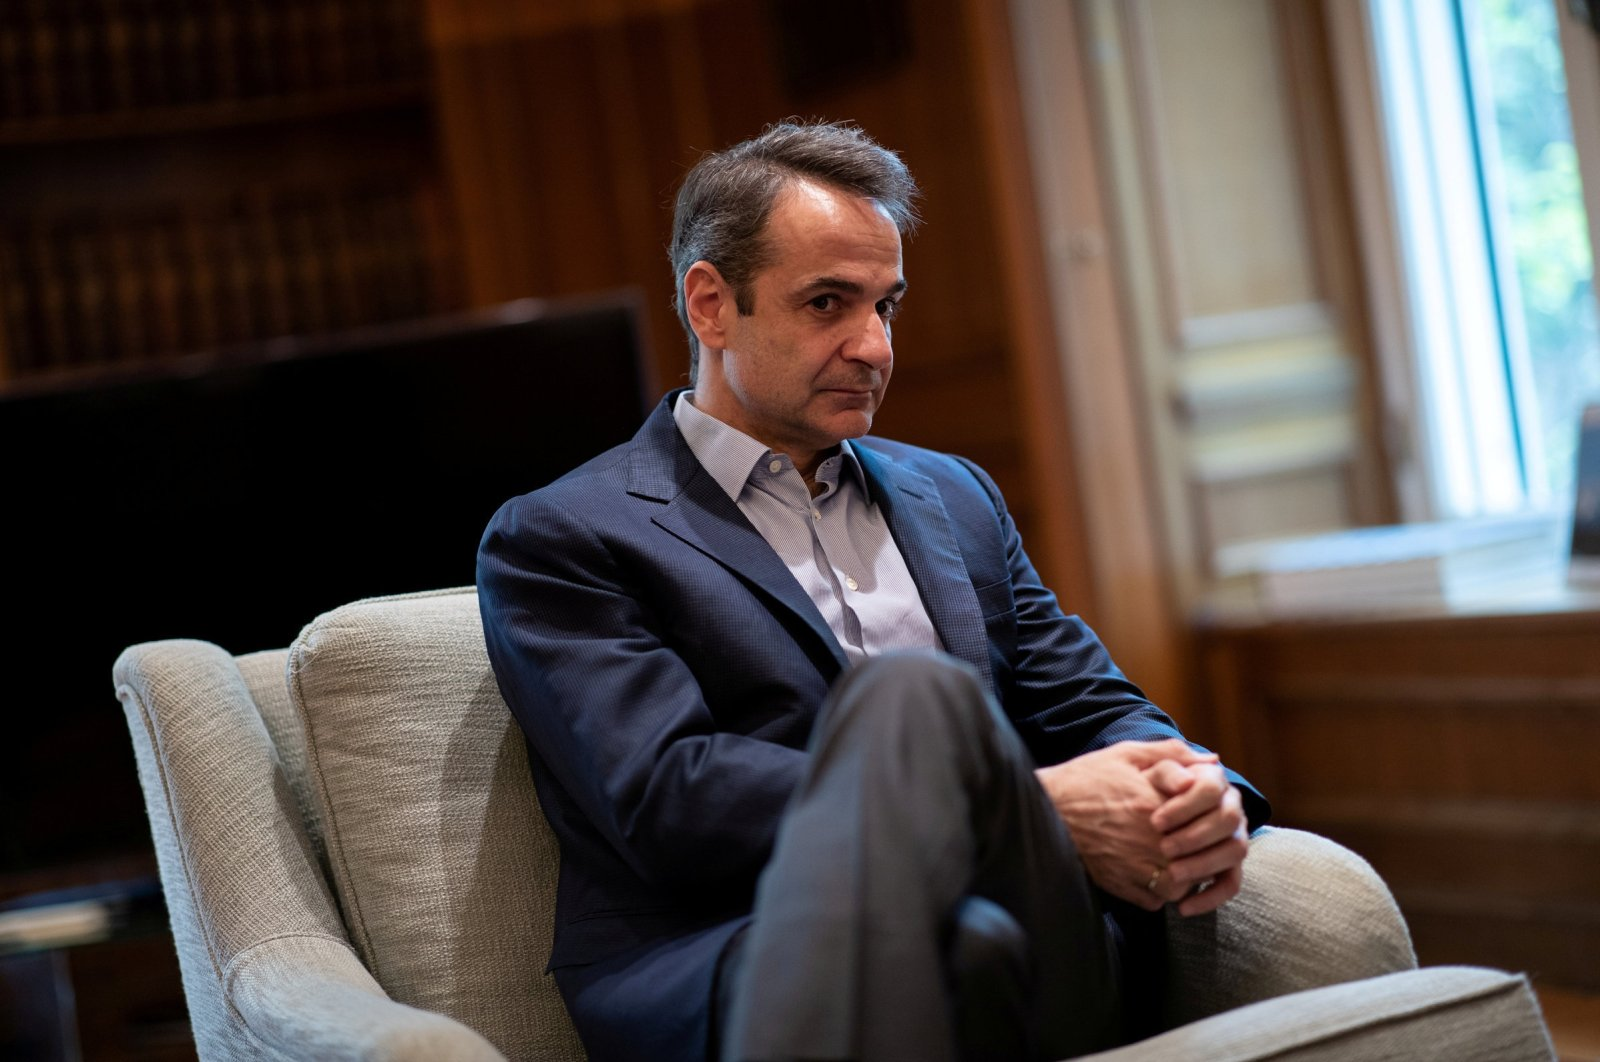 Greek Prime Minister Kyriakos Mitsotakis looks on before his meeting with Managing Director of the European Stability Mechanism Klaus Regling in his office in the Maximos Mansion in Athens, Greece, March 7, 2020. (REUTERS)